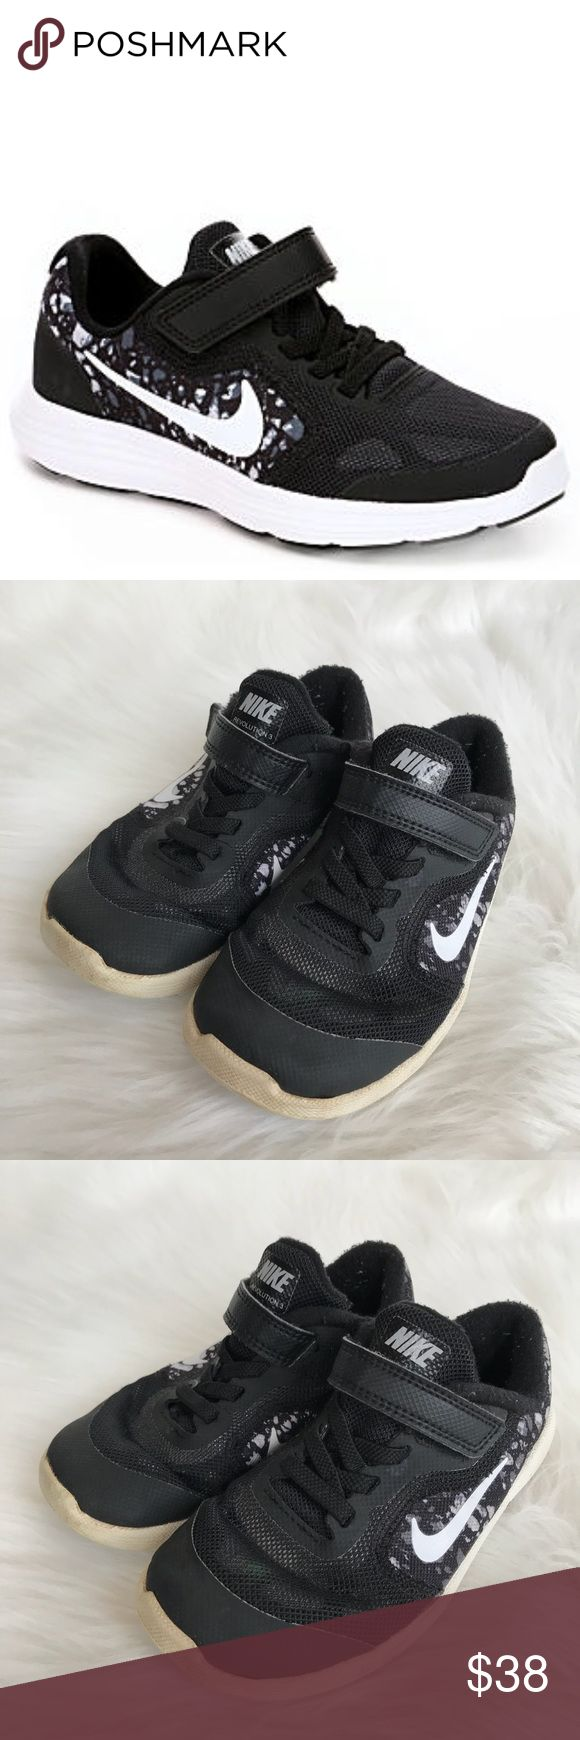 Nike Revolution 3 Toddler Sneaker Velcro Shoes Nike Revolution 3 Toddler Boy's Sneaker Velcro Shoes in Black & White! Looks just like an adult trainer & crafted for comfort with a light mesh upper, supportive synthetic overlays & a secure hook-and-loop strap! Mesh/synthetic upper. Lace-up front with adjustable Velcro strap. Size 10. Used condition. Some wear. CP3081112517 Nike Shoes Sneakers